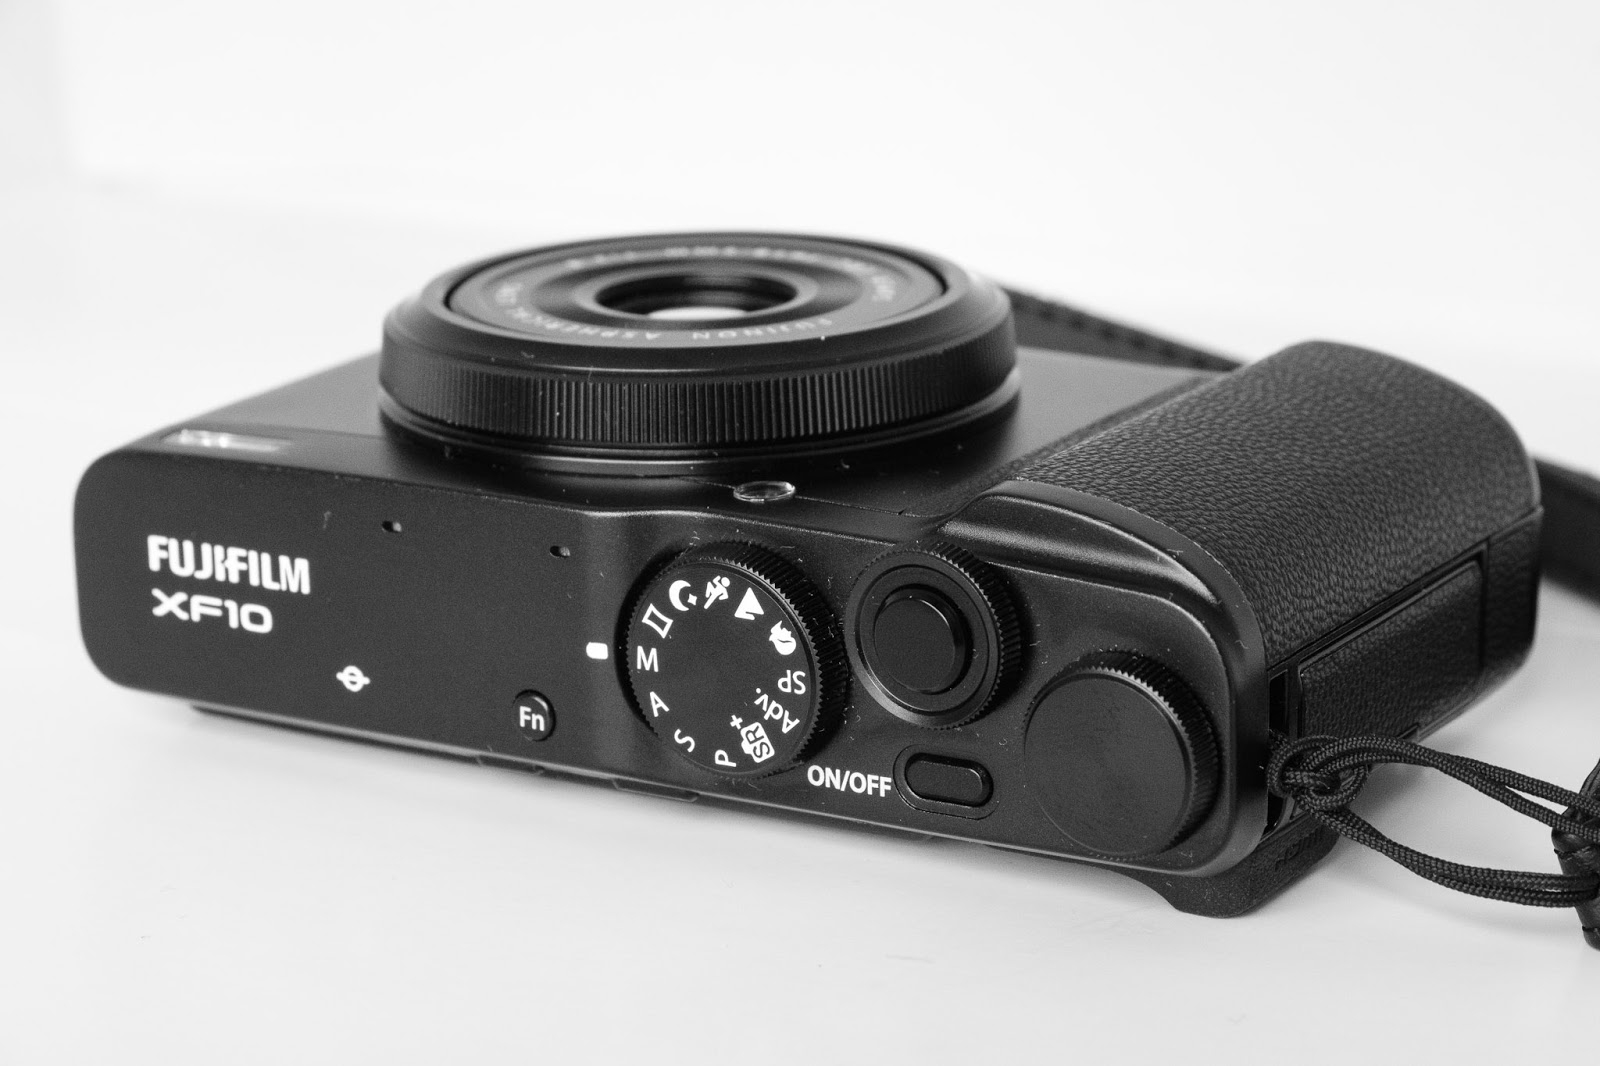 Björn Moerman PHOTOGRAPHY: FIRST LOOK REVIEW FUJIFILM XF10